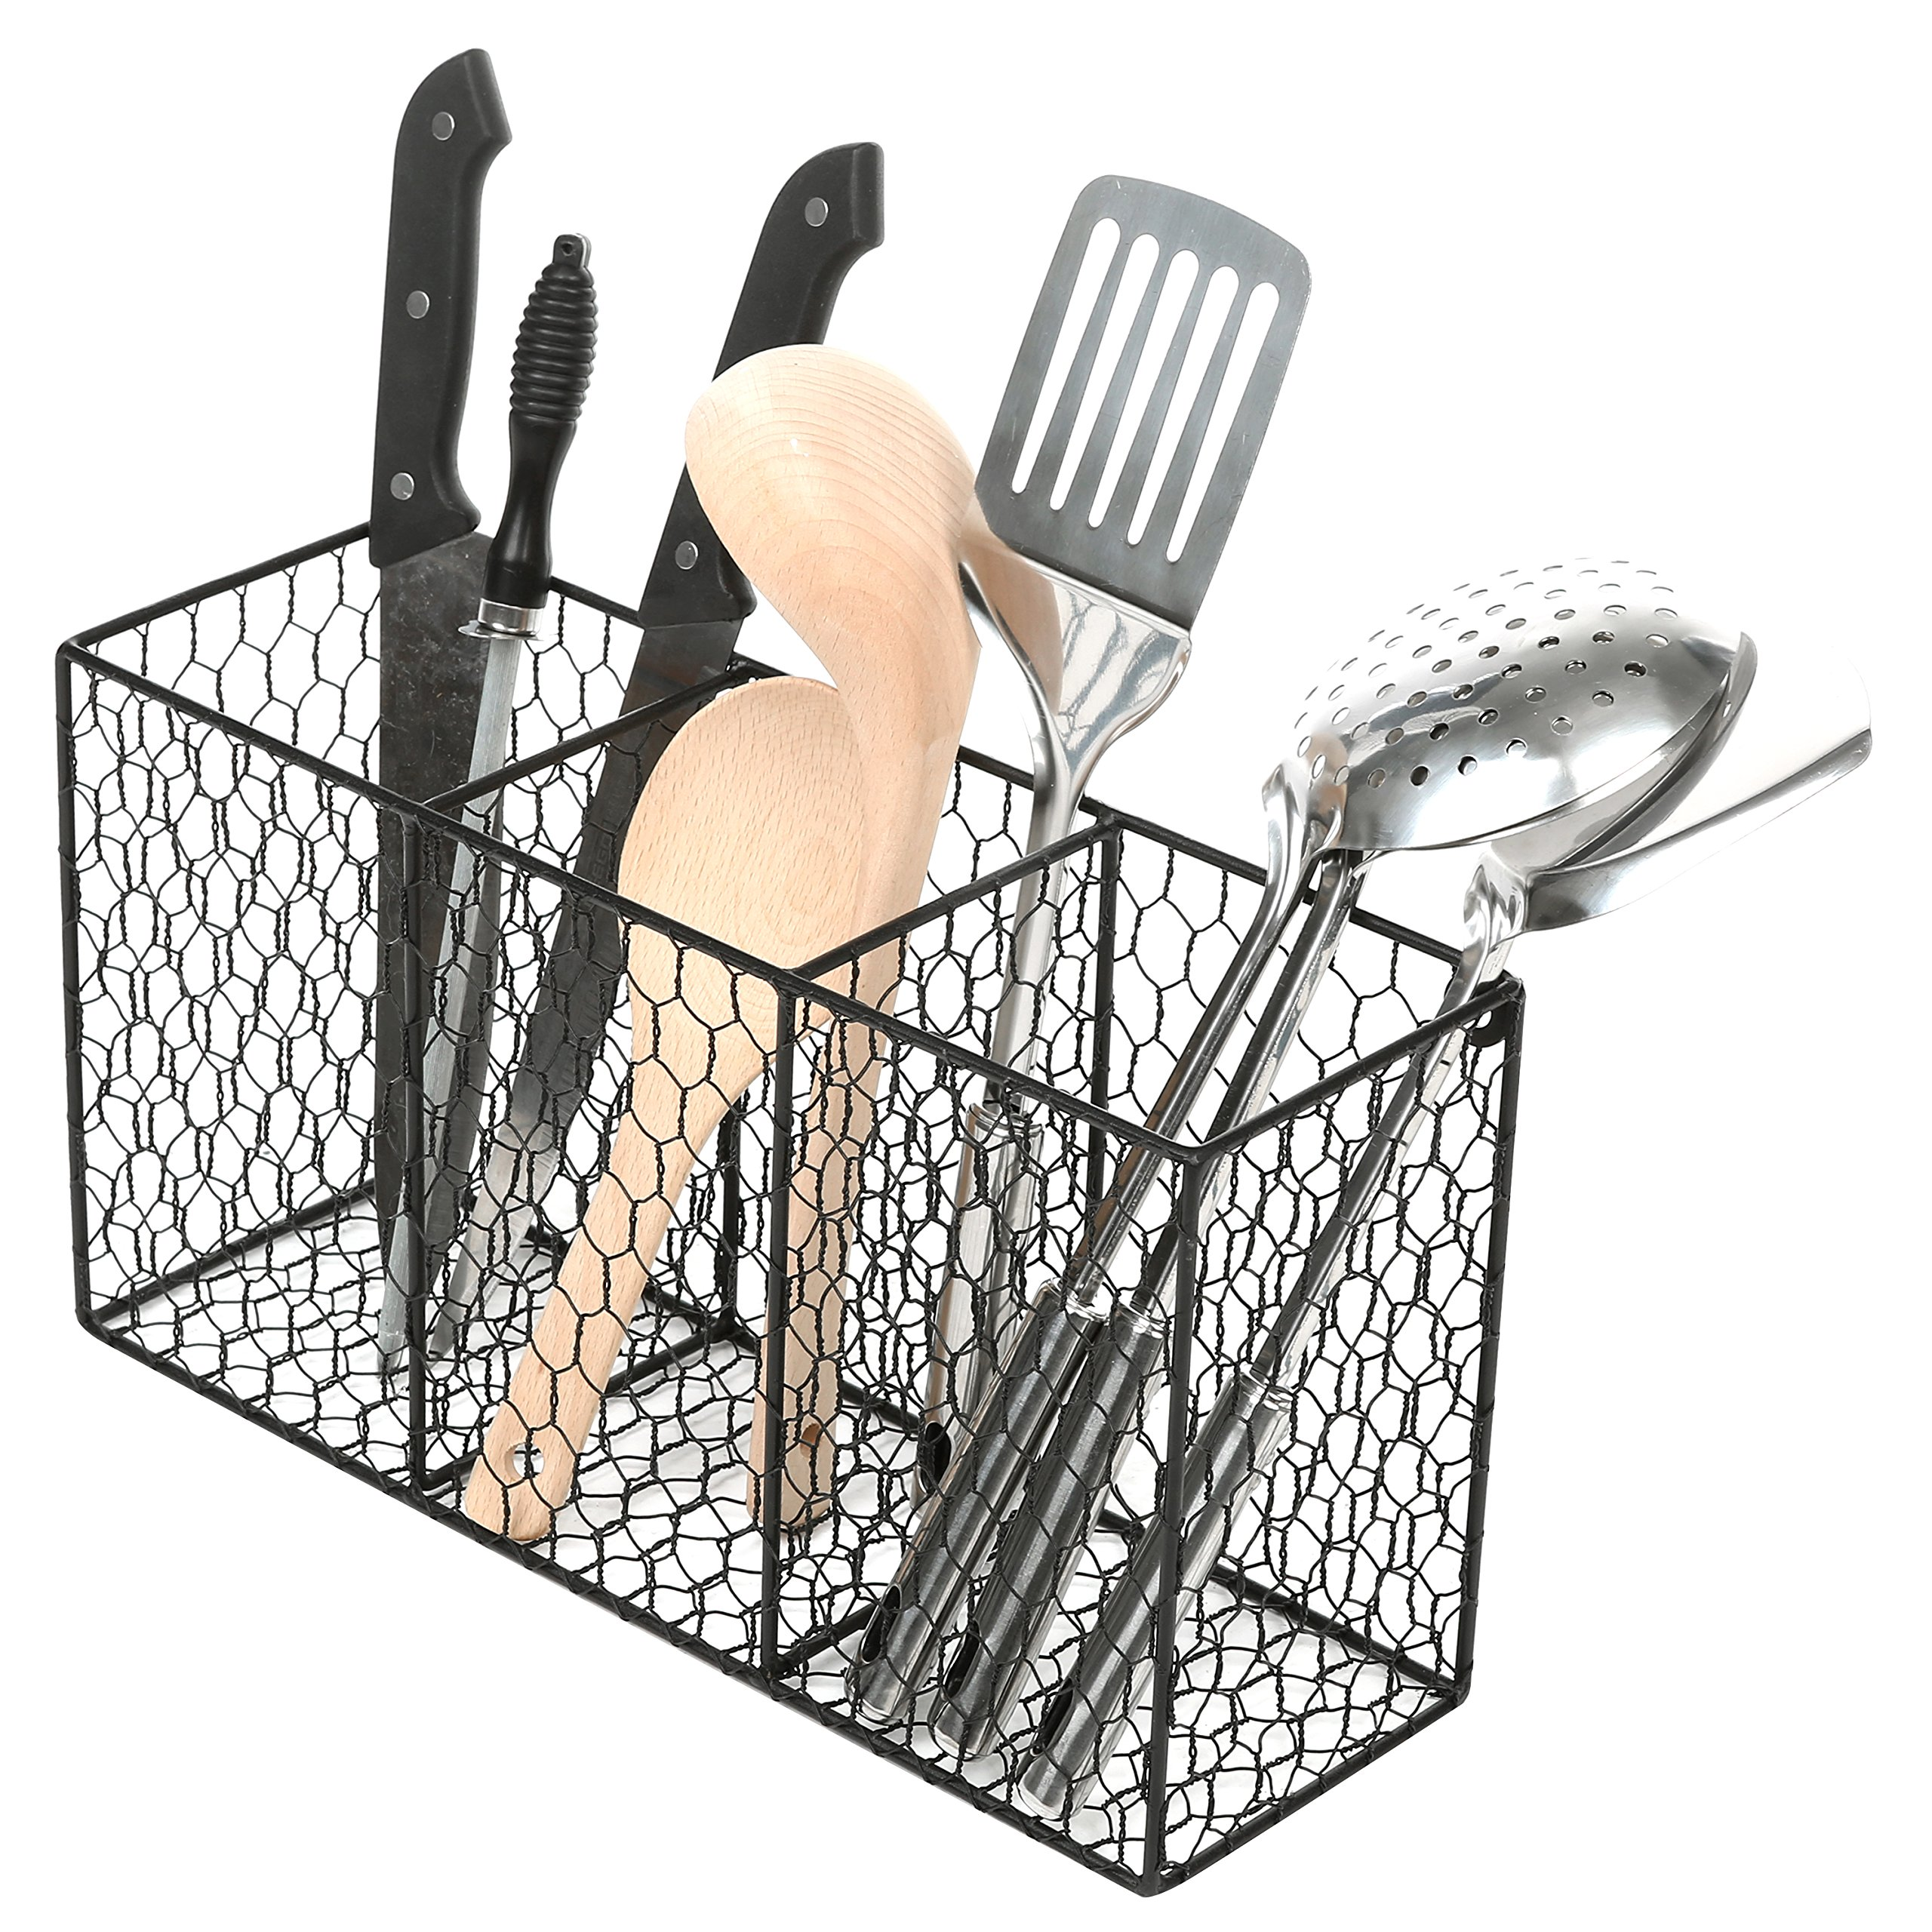 3 Compartment Rustic Chicken Wire Kitchen Utensil Holder Basket, Pantry Storage Rack, Black